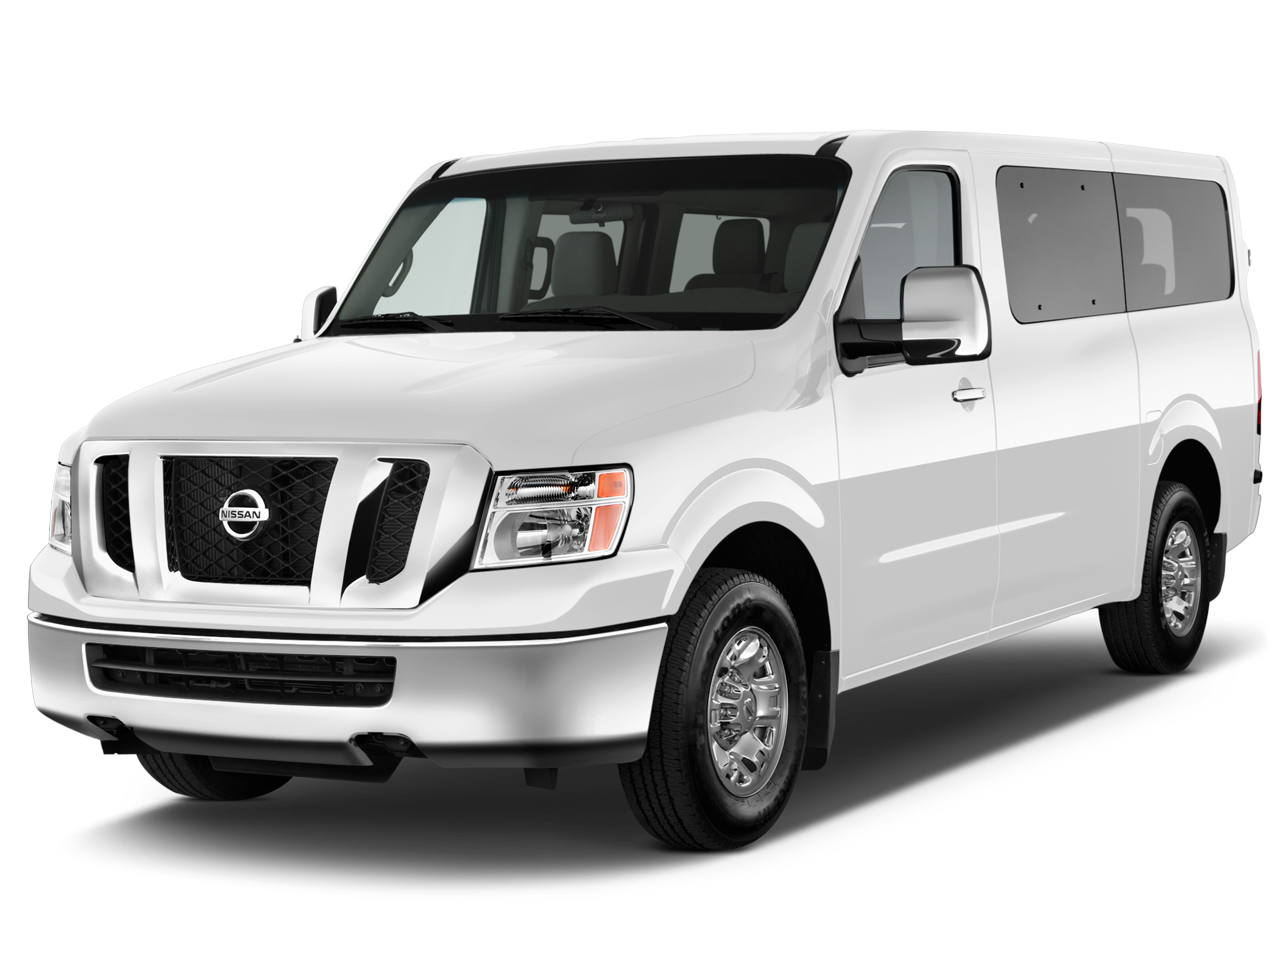 new 2017 nissan nv passenger sv in keyport nj pine belt nissan of toms river. Black Bedroom Furniture Sets. Home Design Ideas